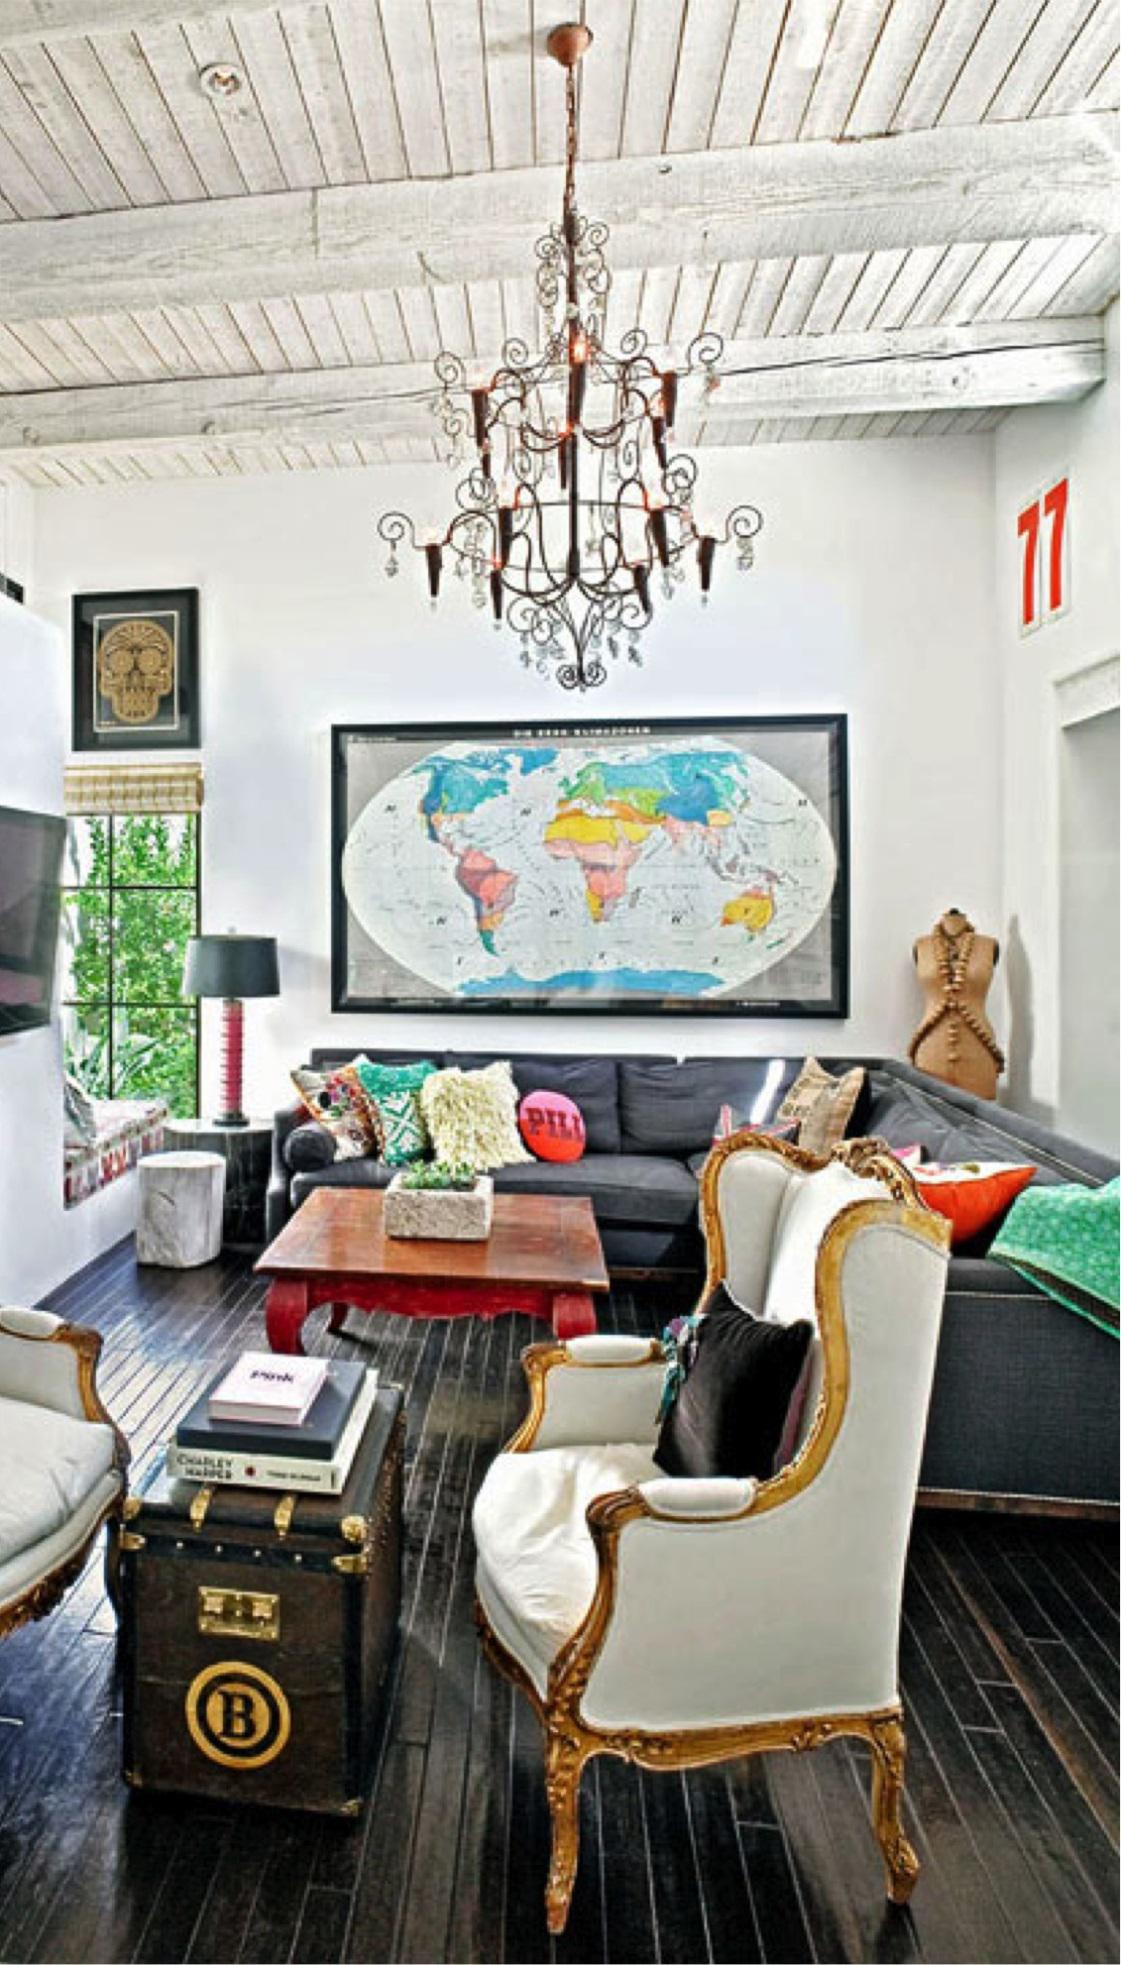 Eclectic Home Decor Items